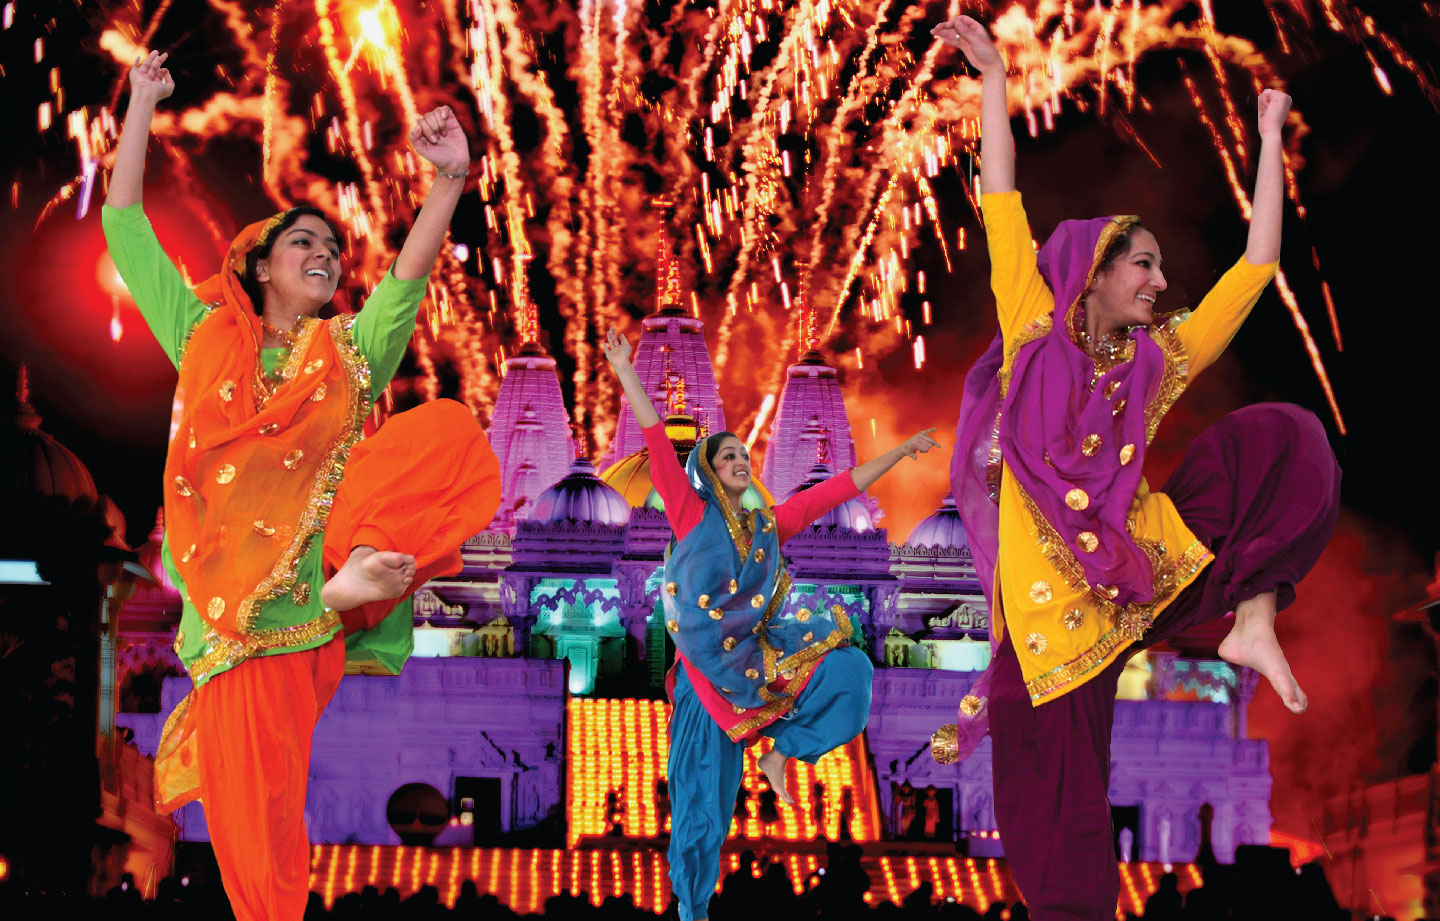 essay about indian holiday Diwali essay - find diwali essays ideas fron this page  we also take bananas, apples and grapes and many other fruits i dress in indian clothes.